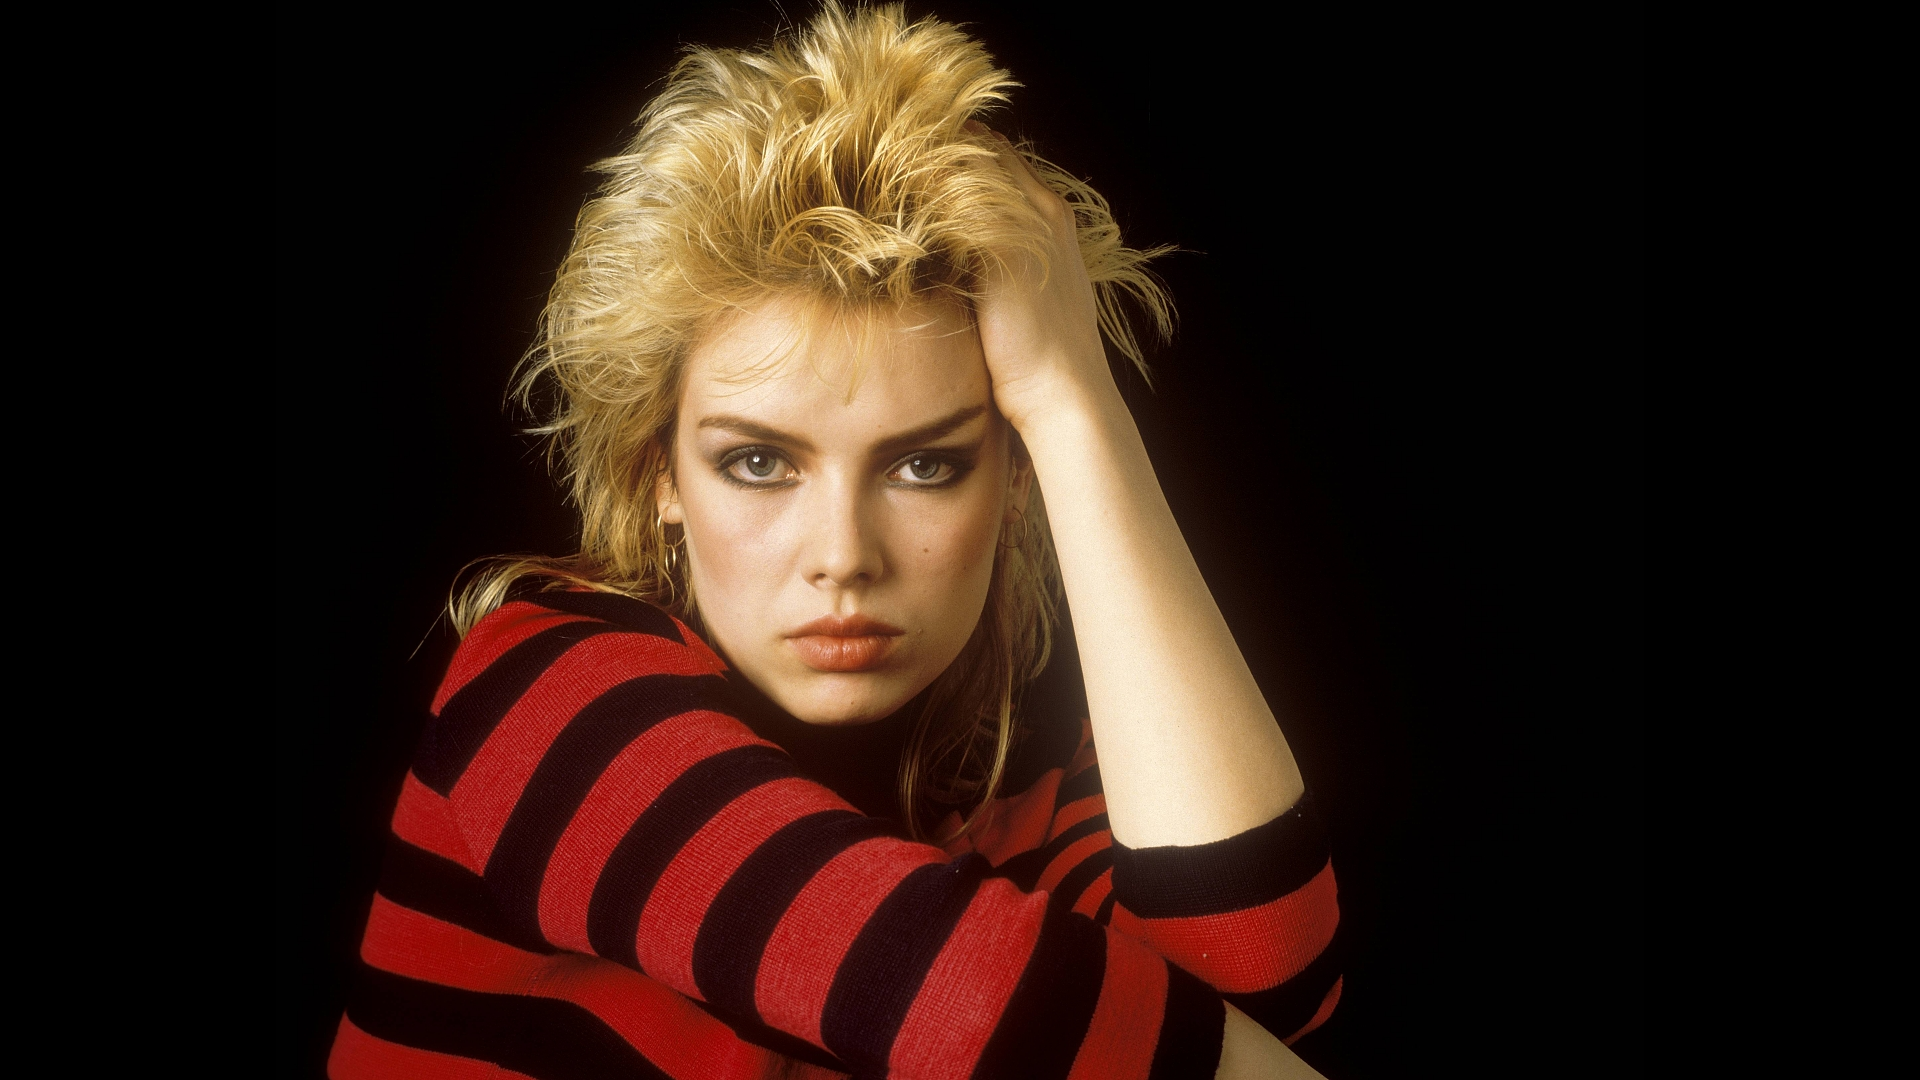 You Came av Kim Wilde